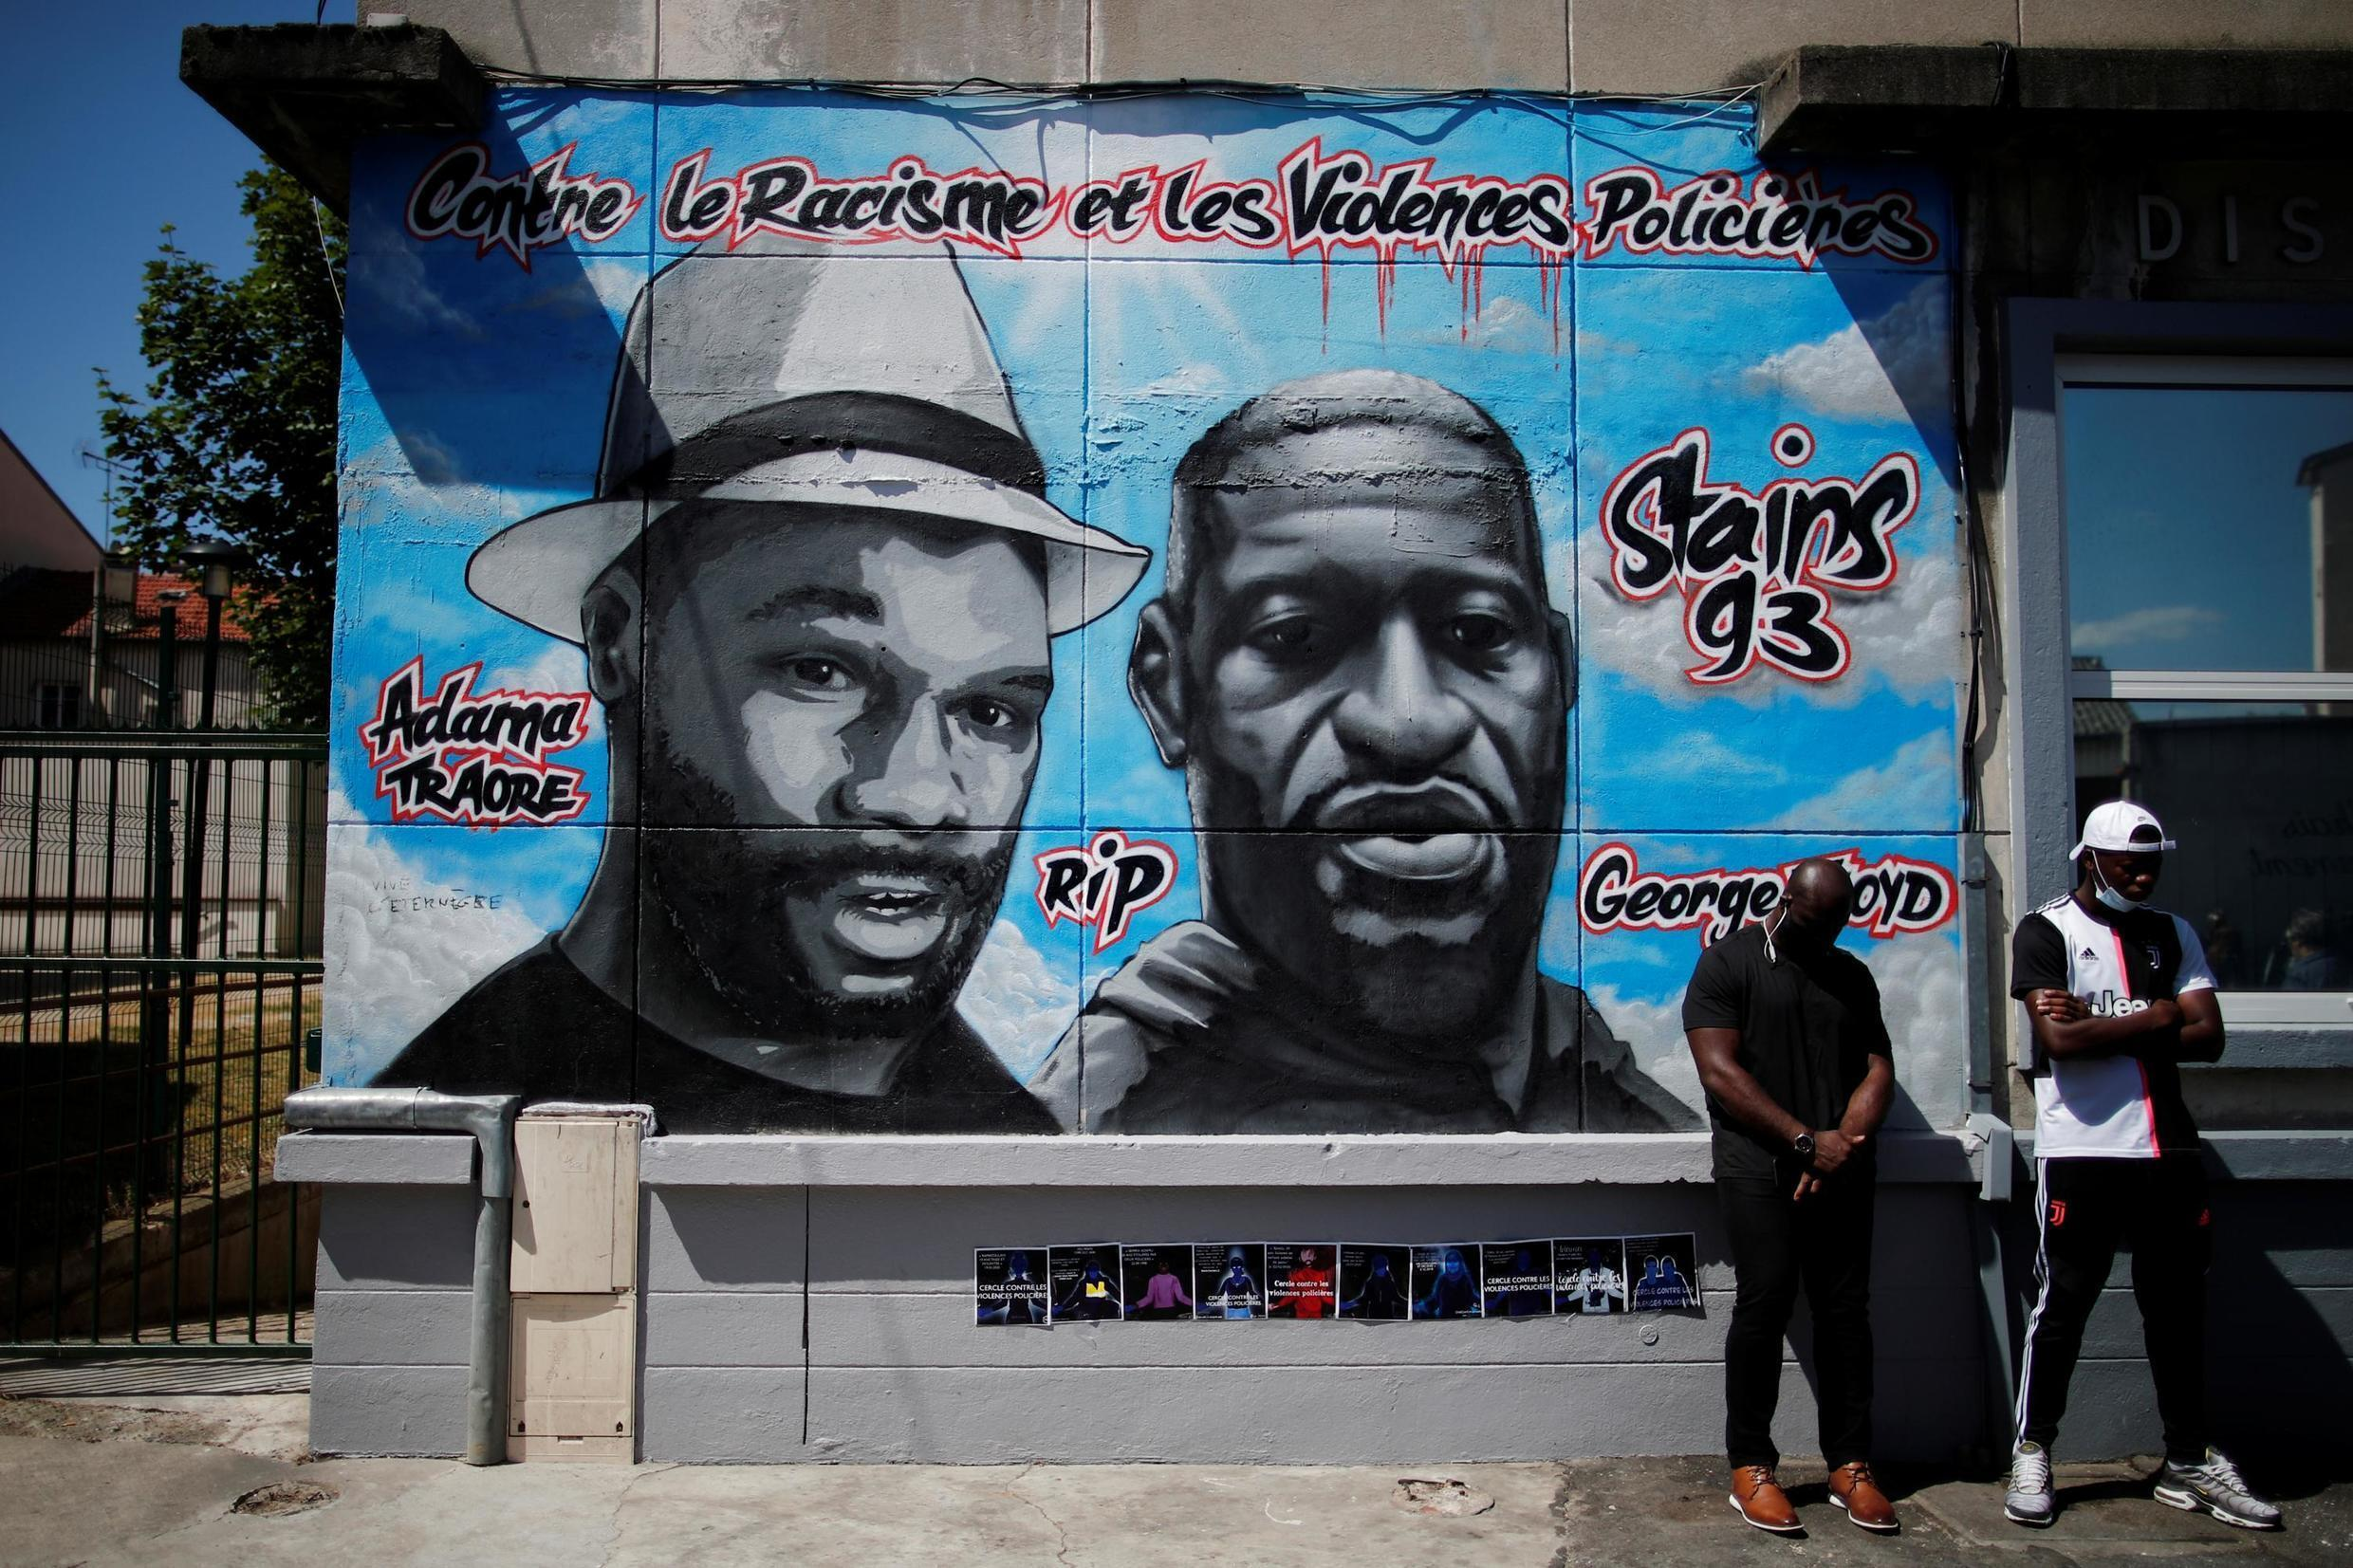 A mural paying tribute to George Floyd and Adama Traoré before it was vandalized, in Stains, in the Paris suburbs, on June 22, 2020.